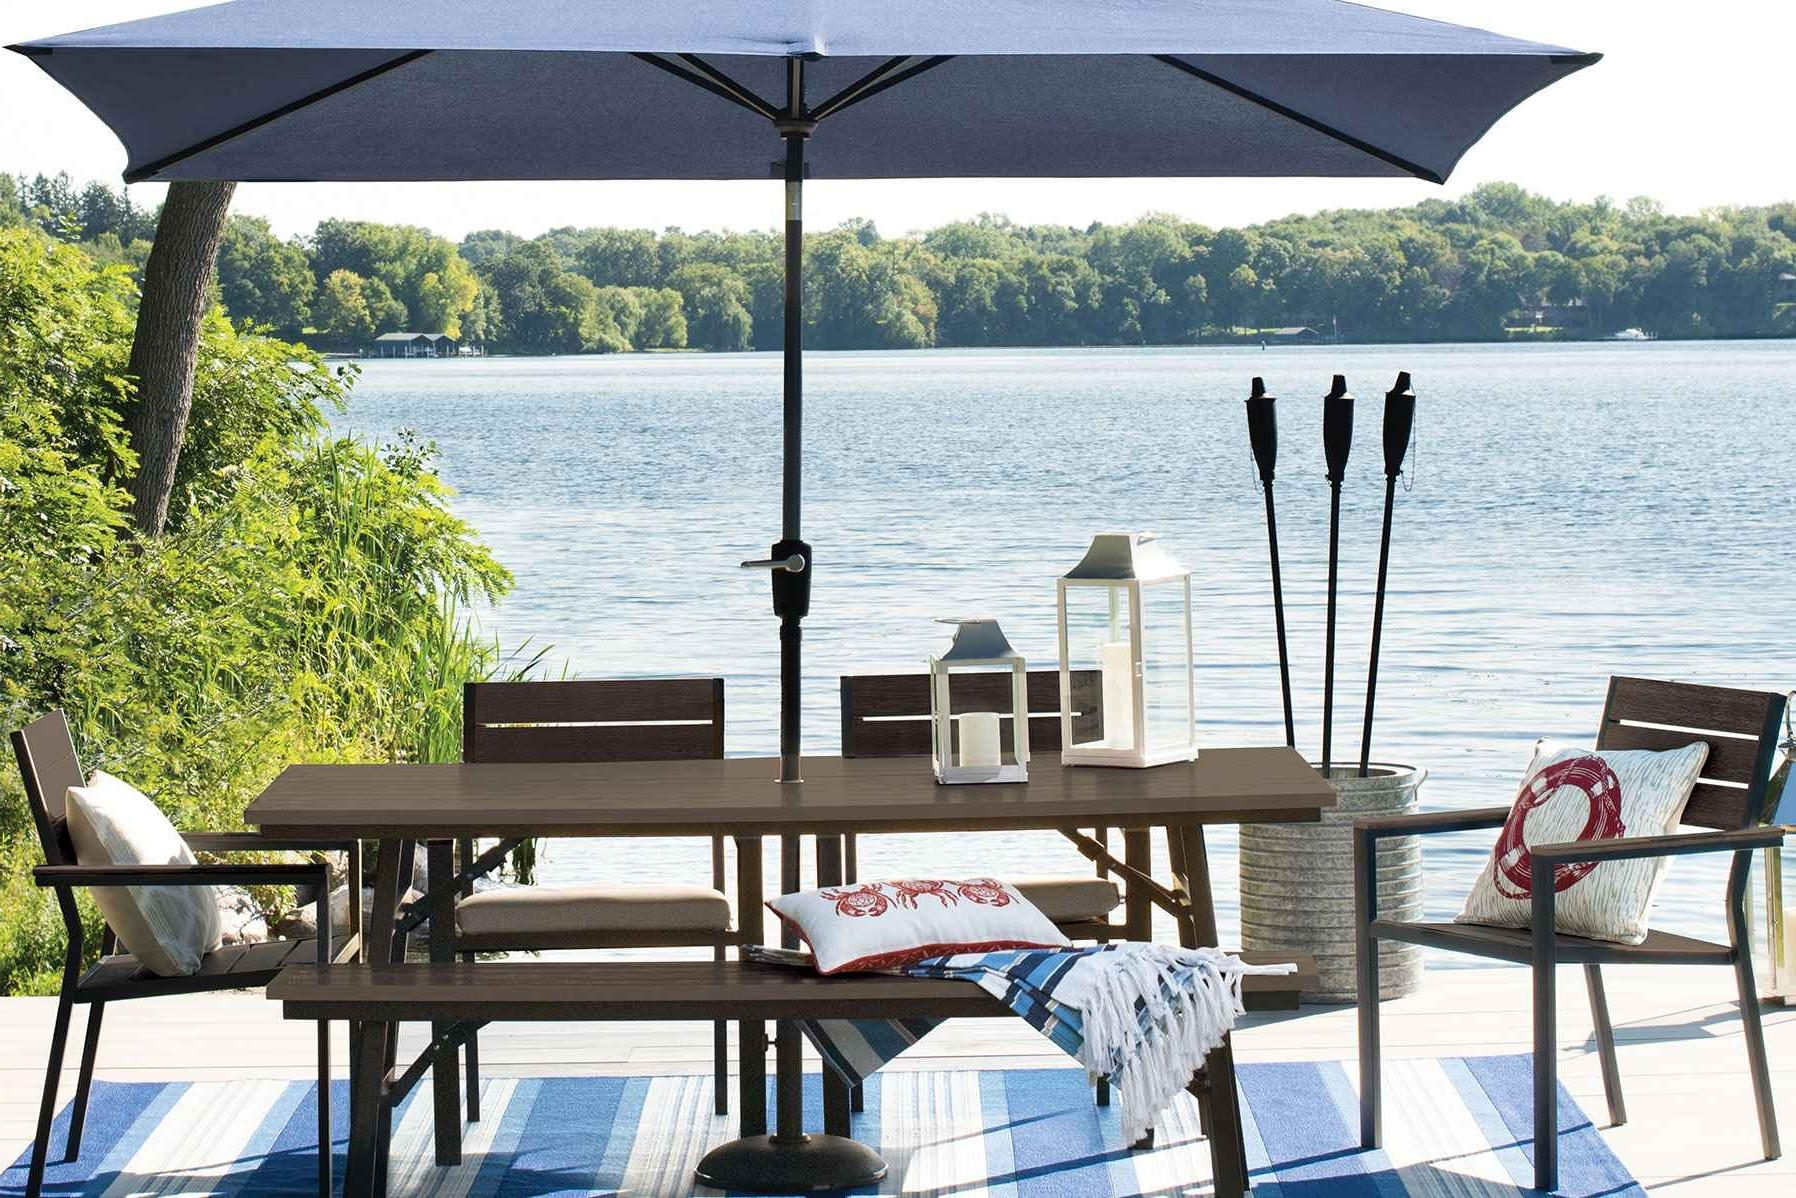 Patio Tablehairs Umbrellaca Breathtaking Furniture Umbrella Picnic In Well Known Patio Umbrellas For Rent (View 8 of 20)